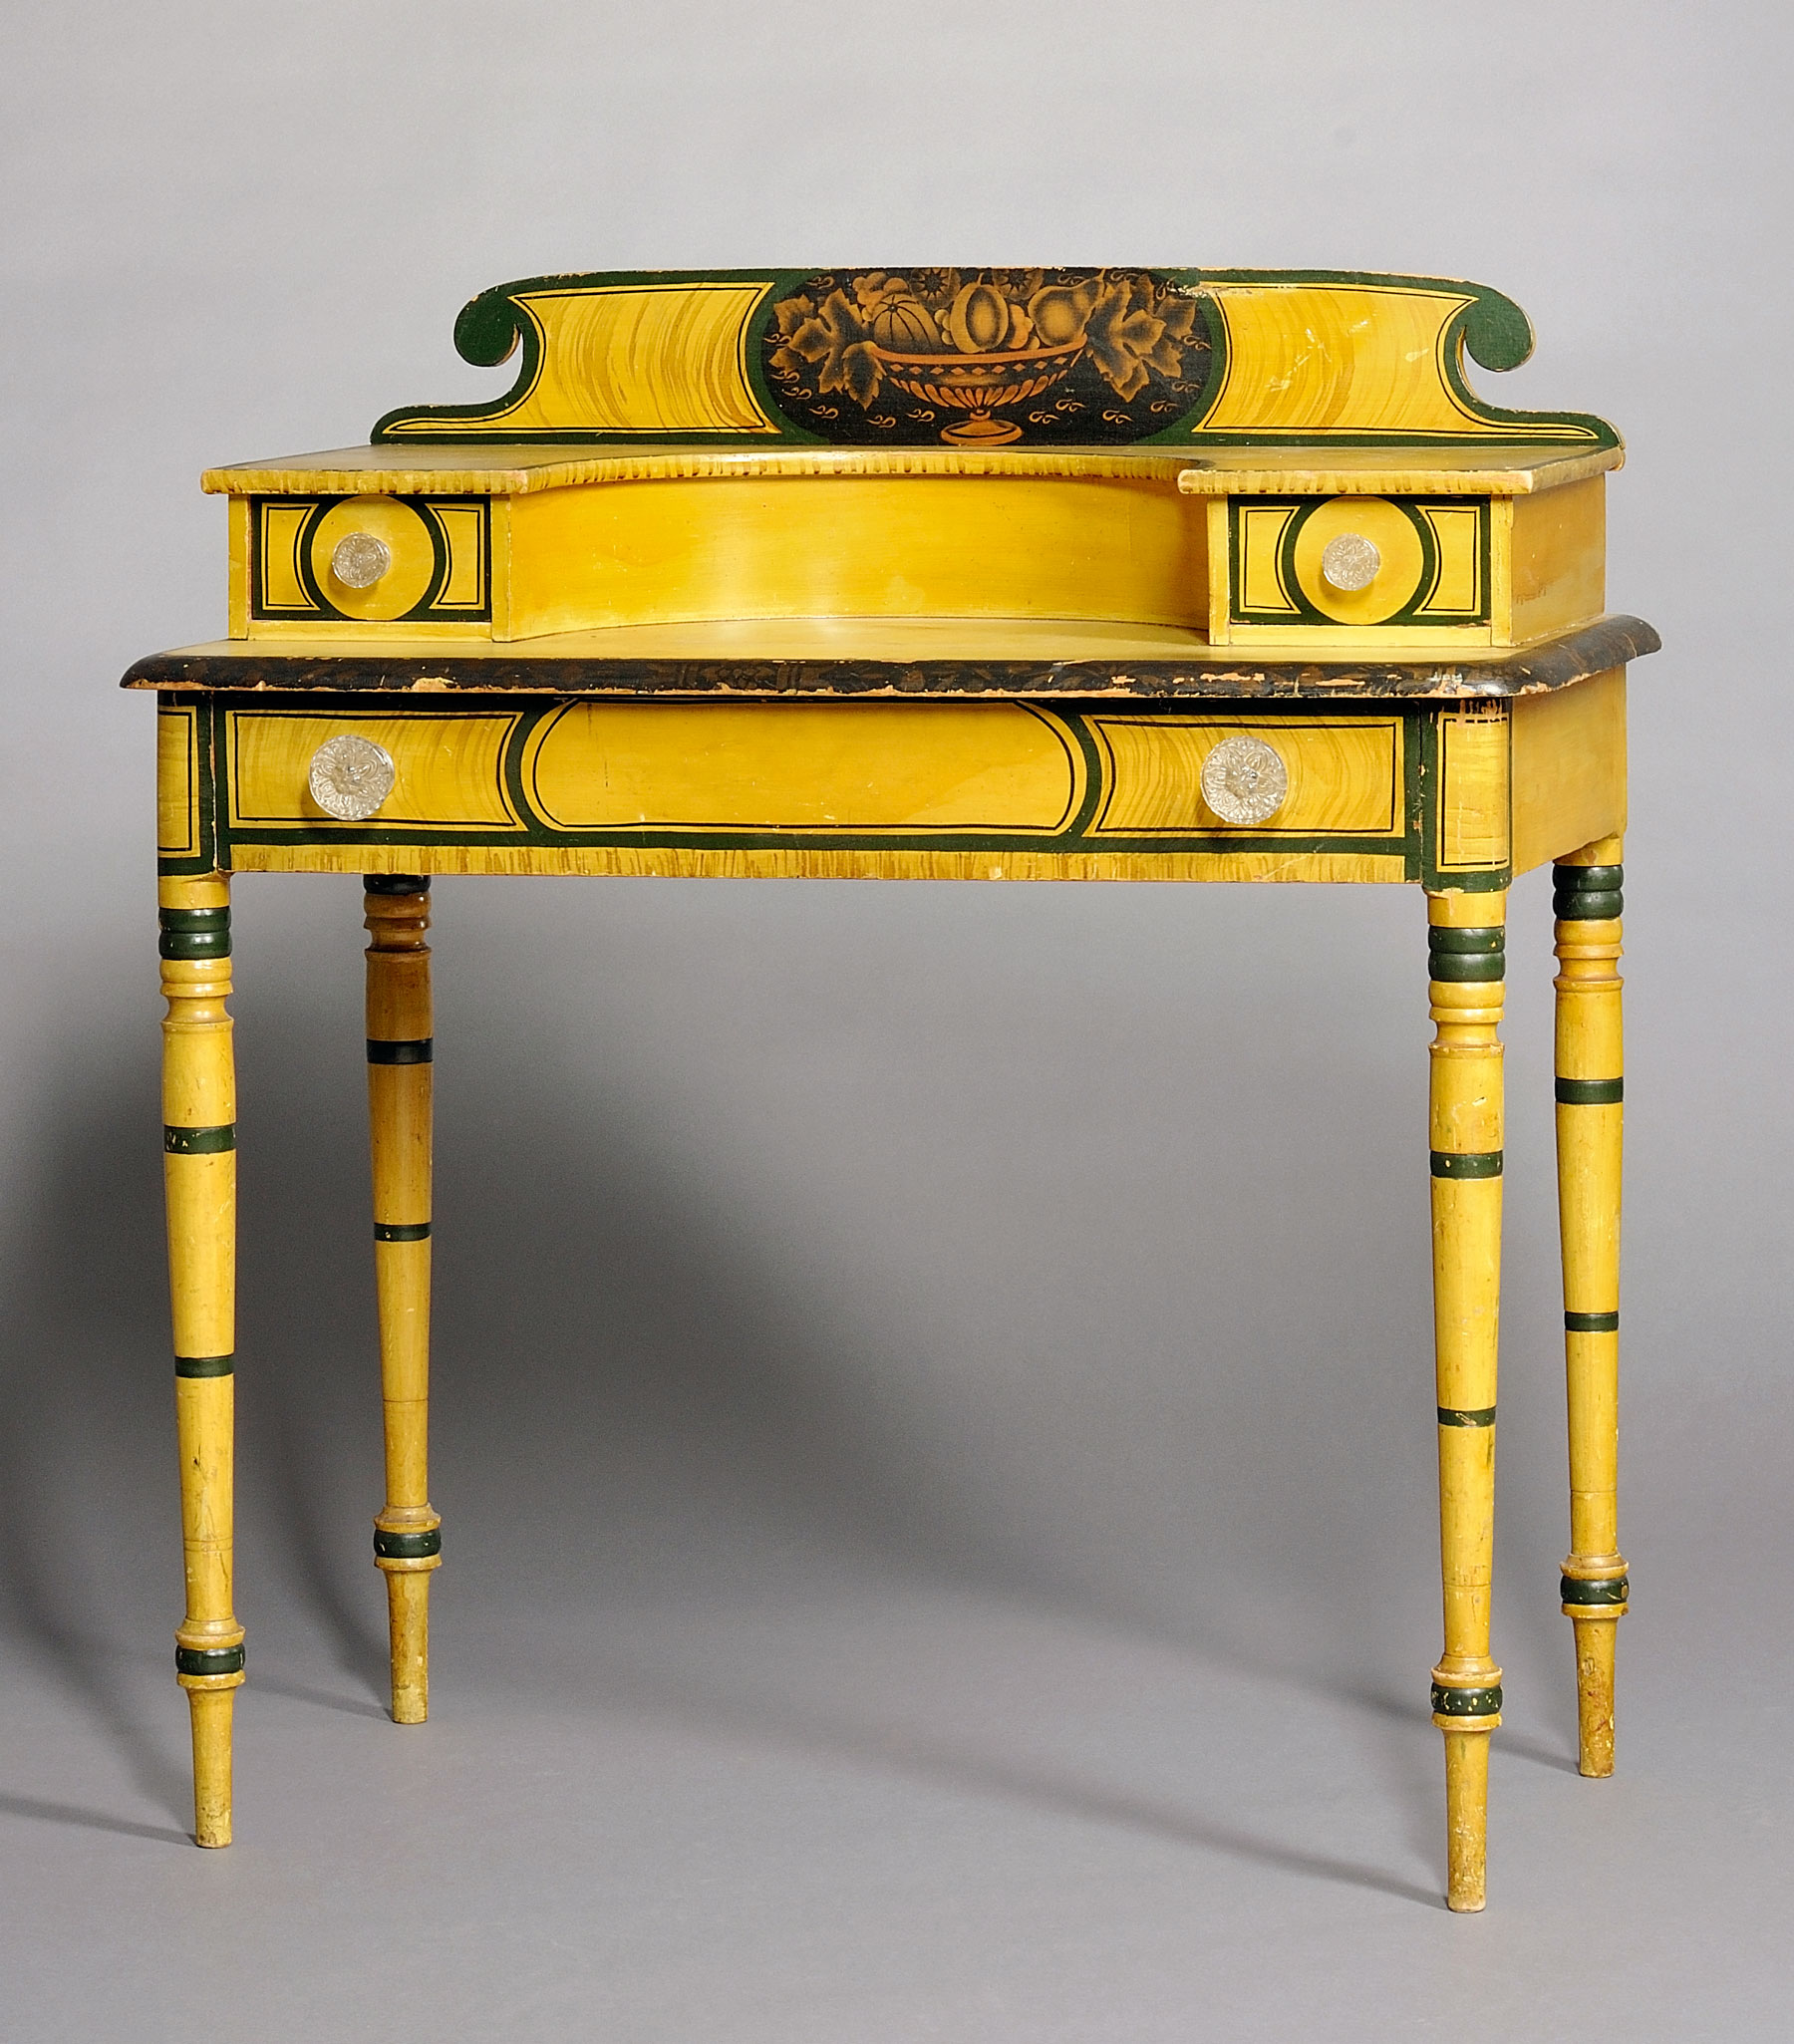 Dressing table, possibly David Colby or Willard Harris, Croydon, New Hampshire, c. 1835